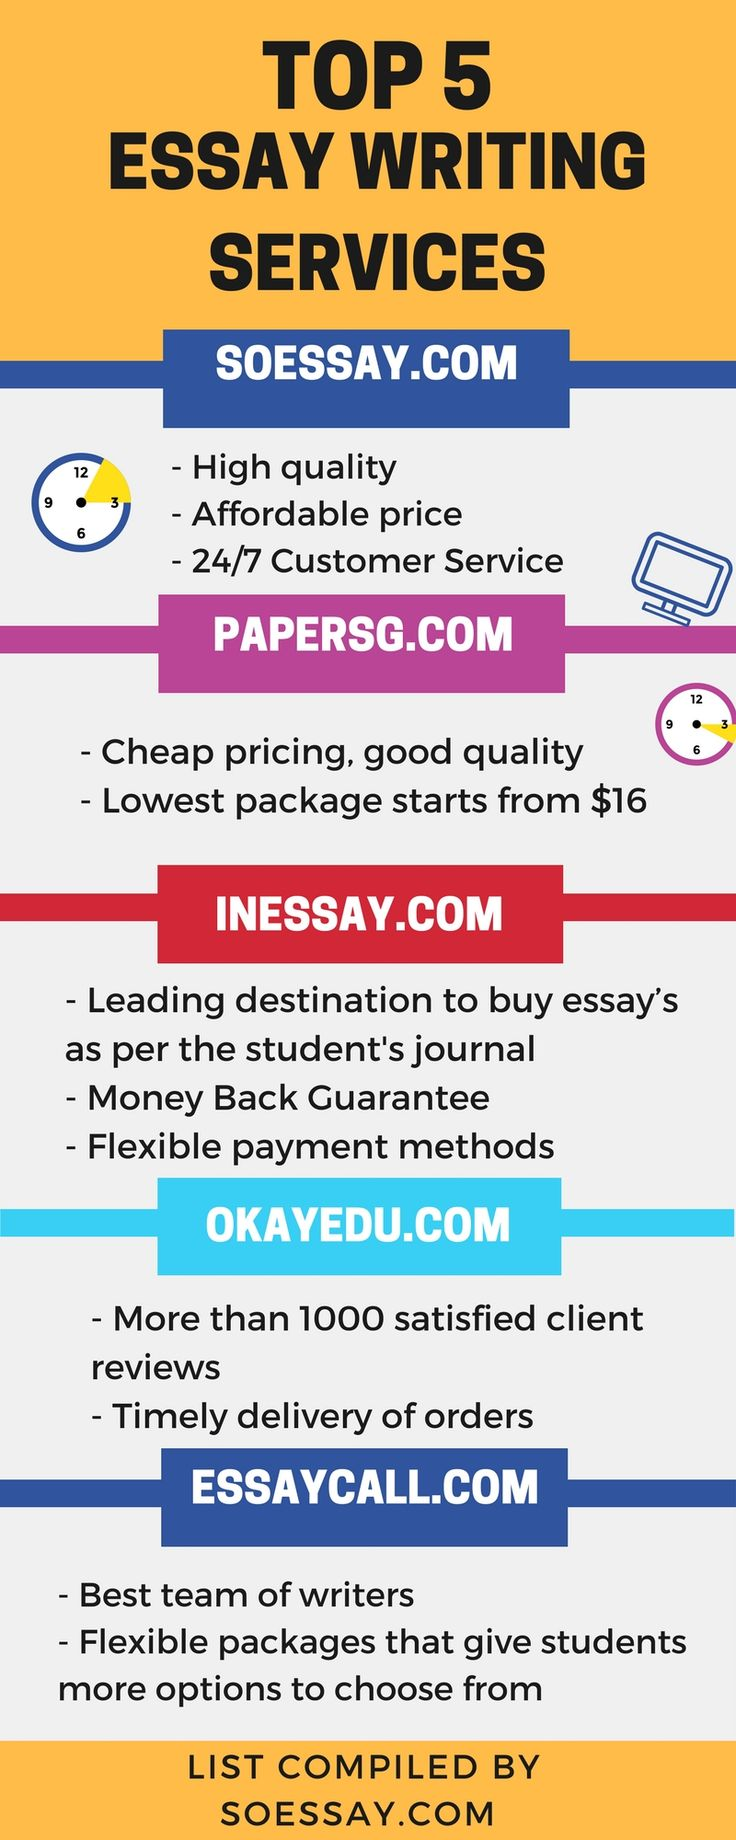 best online essay writing service guide images  compiled list of top essay writing services in the world essaywriting onlineessays